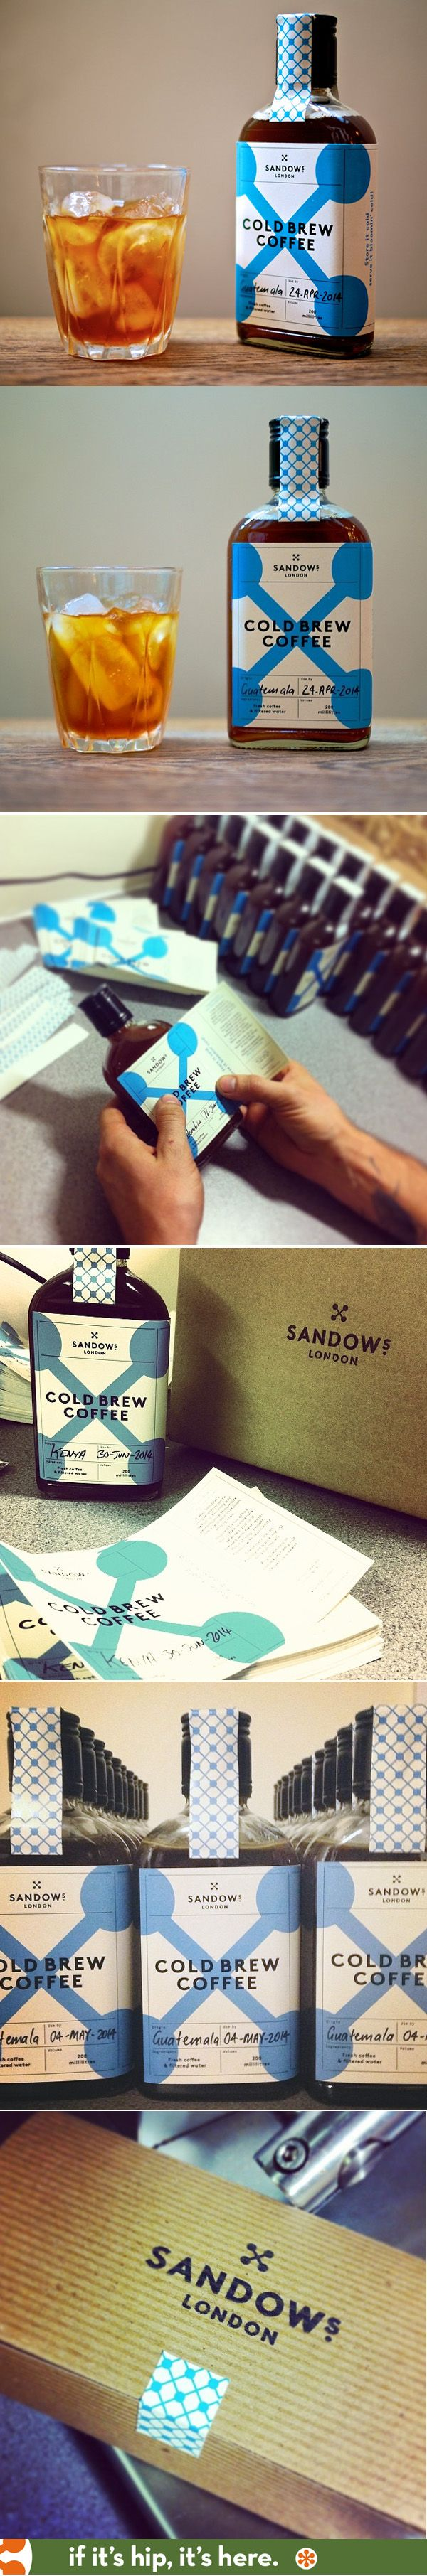 Label, bottle and branding design for Sandows of London cold brewed coffee.